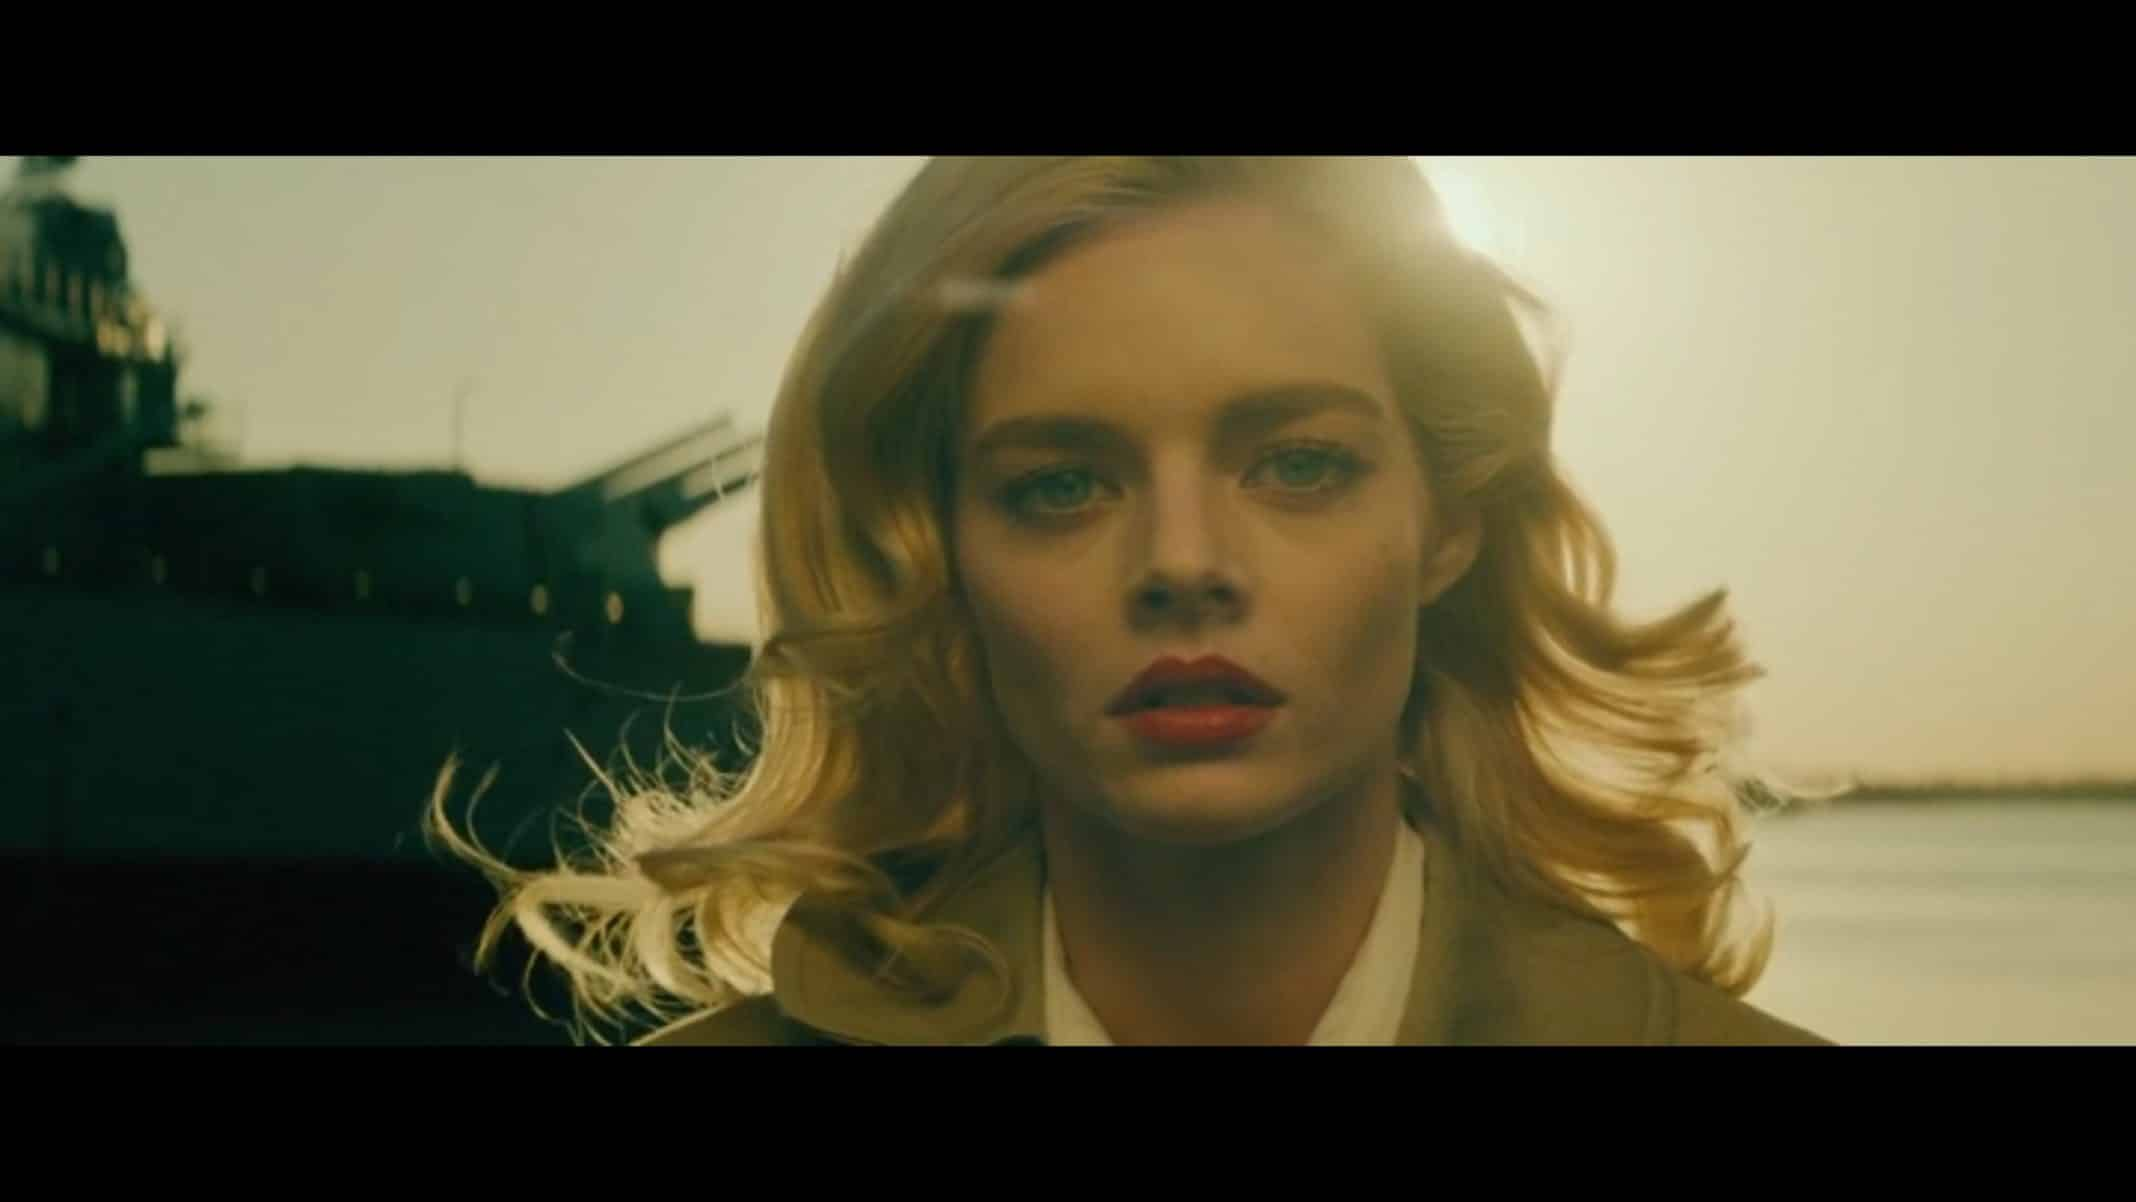 Lauren (Samara Weaving) in a movie role.